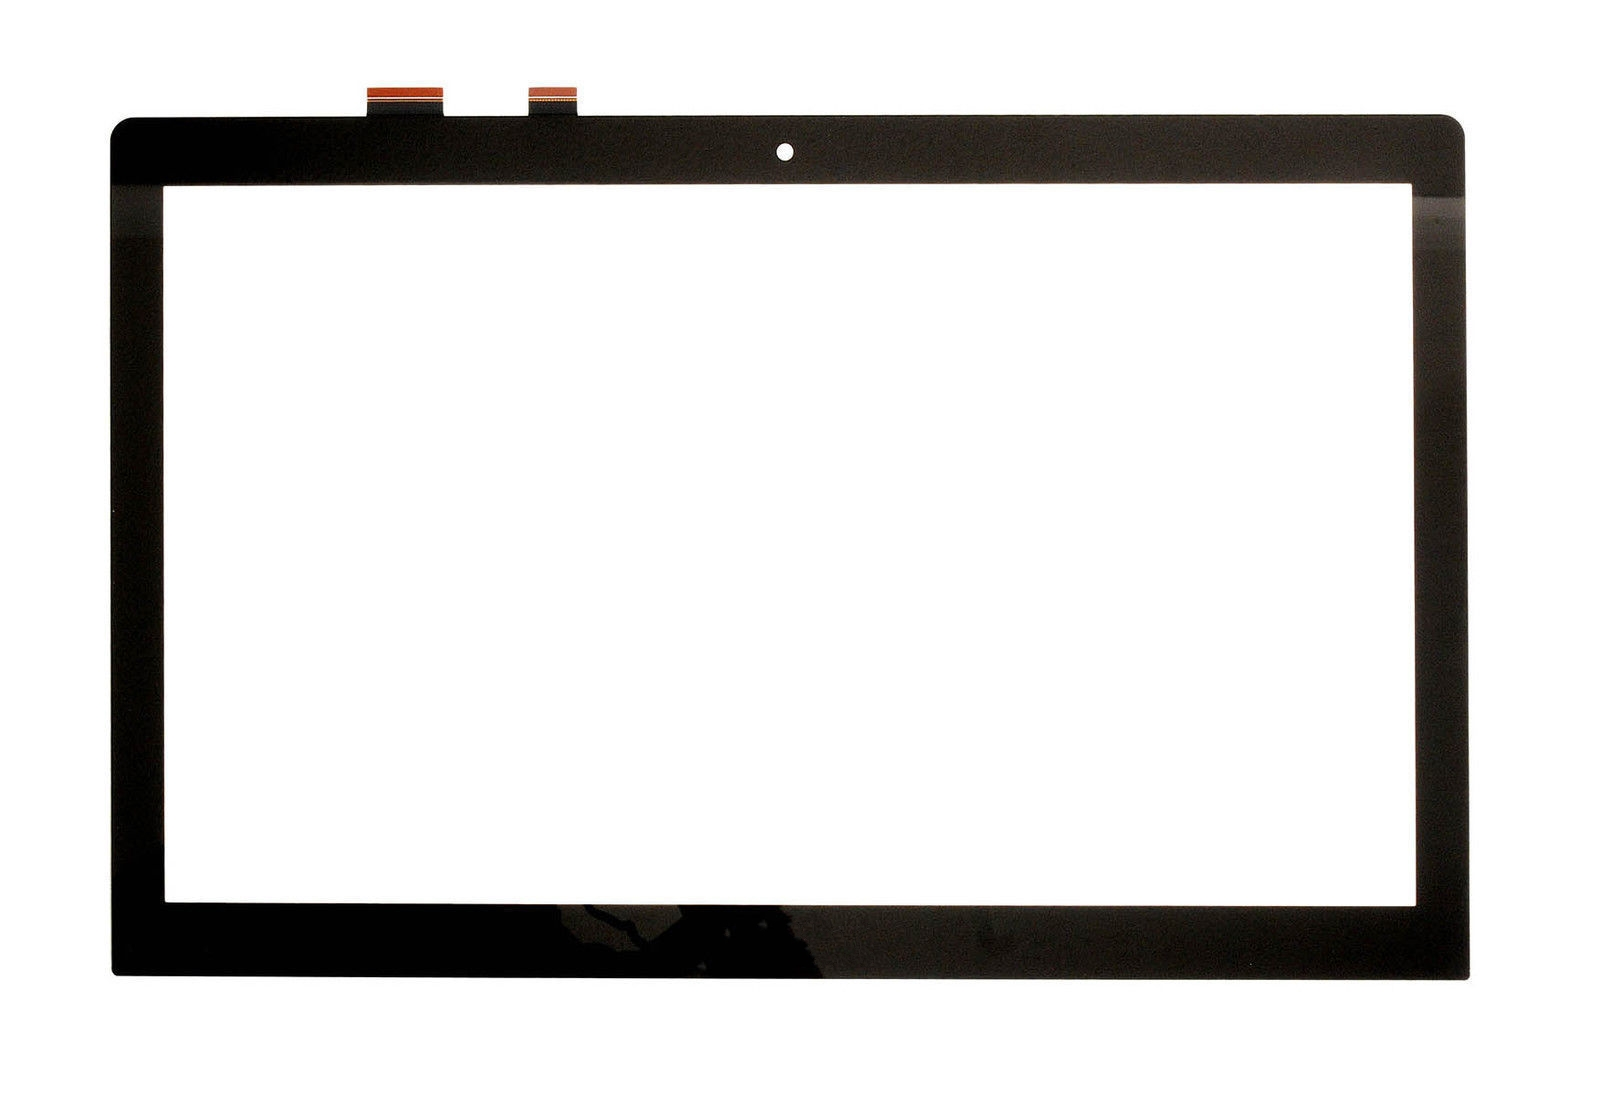 For Asus VivoBook S550 S550C S550CA S550CB S550CM Touch Screen Touch Panel Digitizer Glass Lens Repair Parts Replacement brand new touch screen replacement for fe170cg me170c me170 k012 touch screen panel digitizer glass lens sensor repair parts